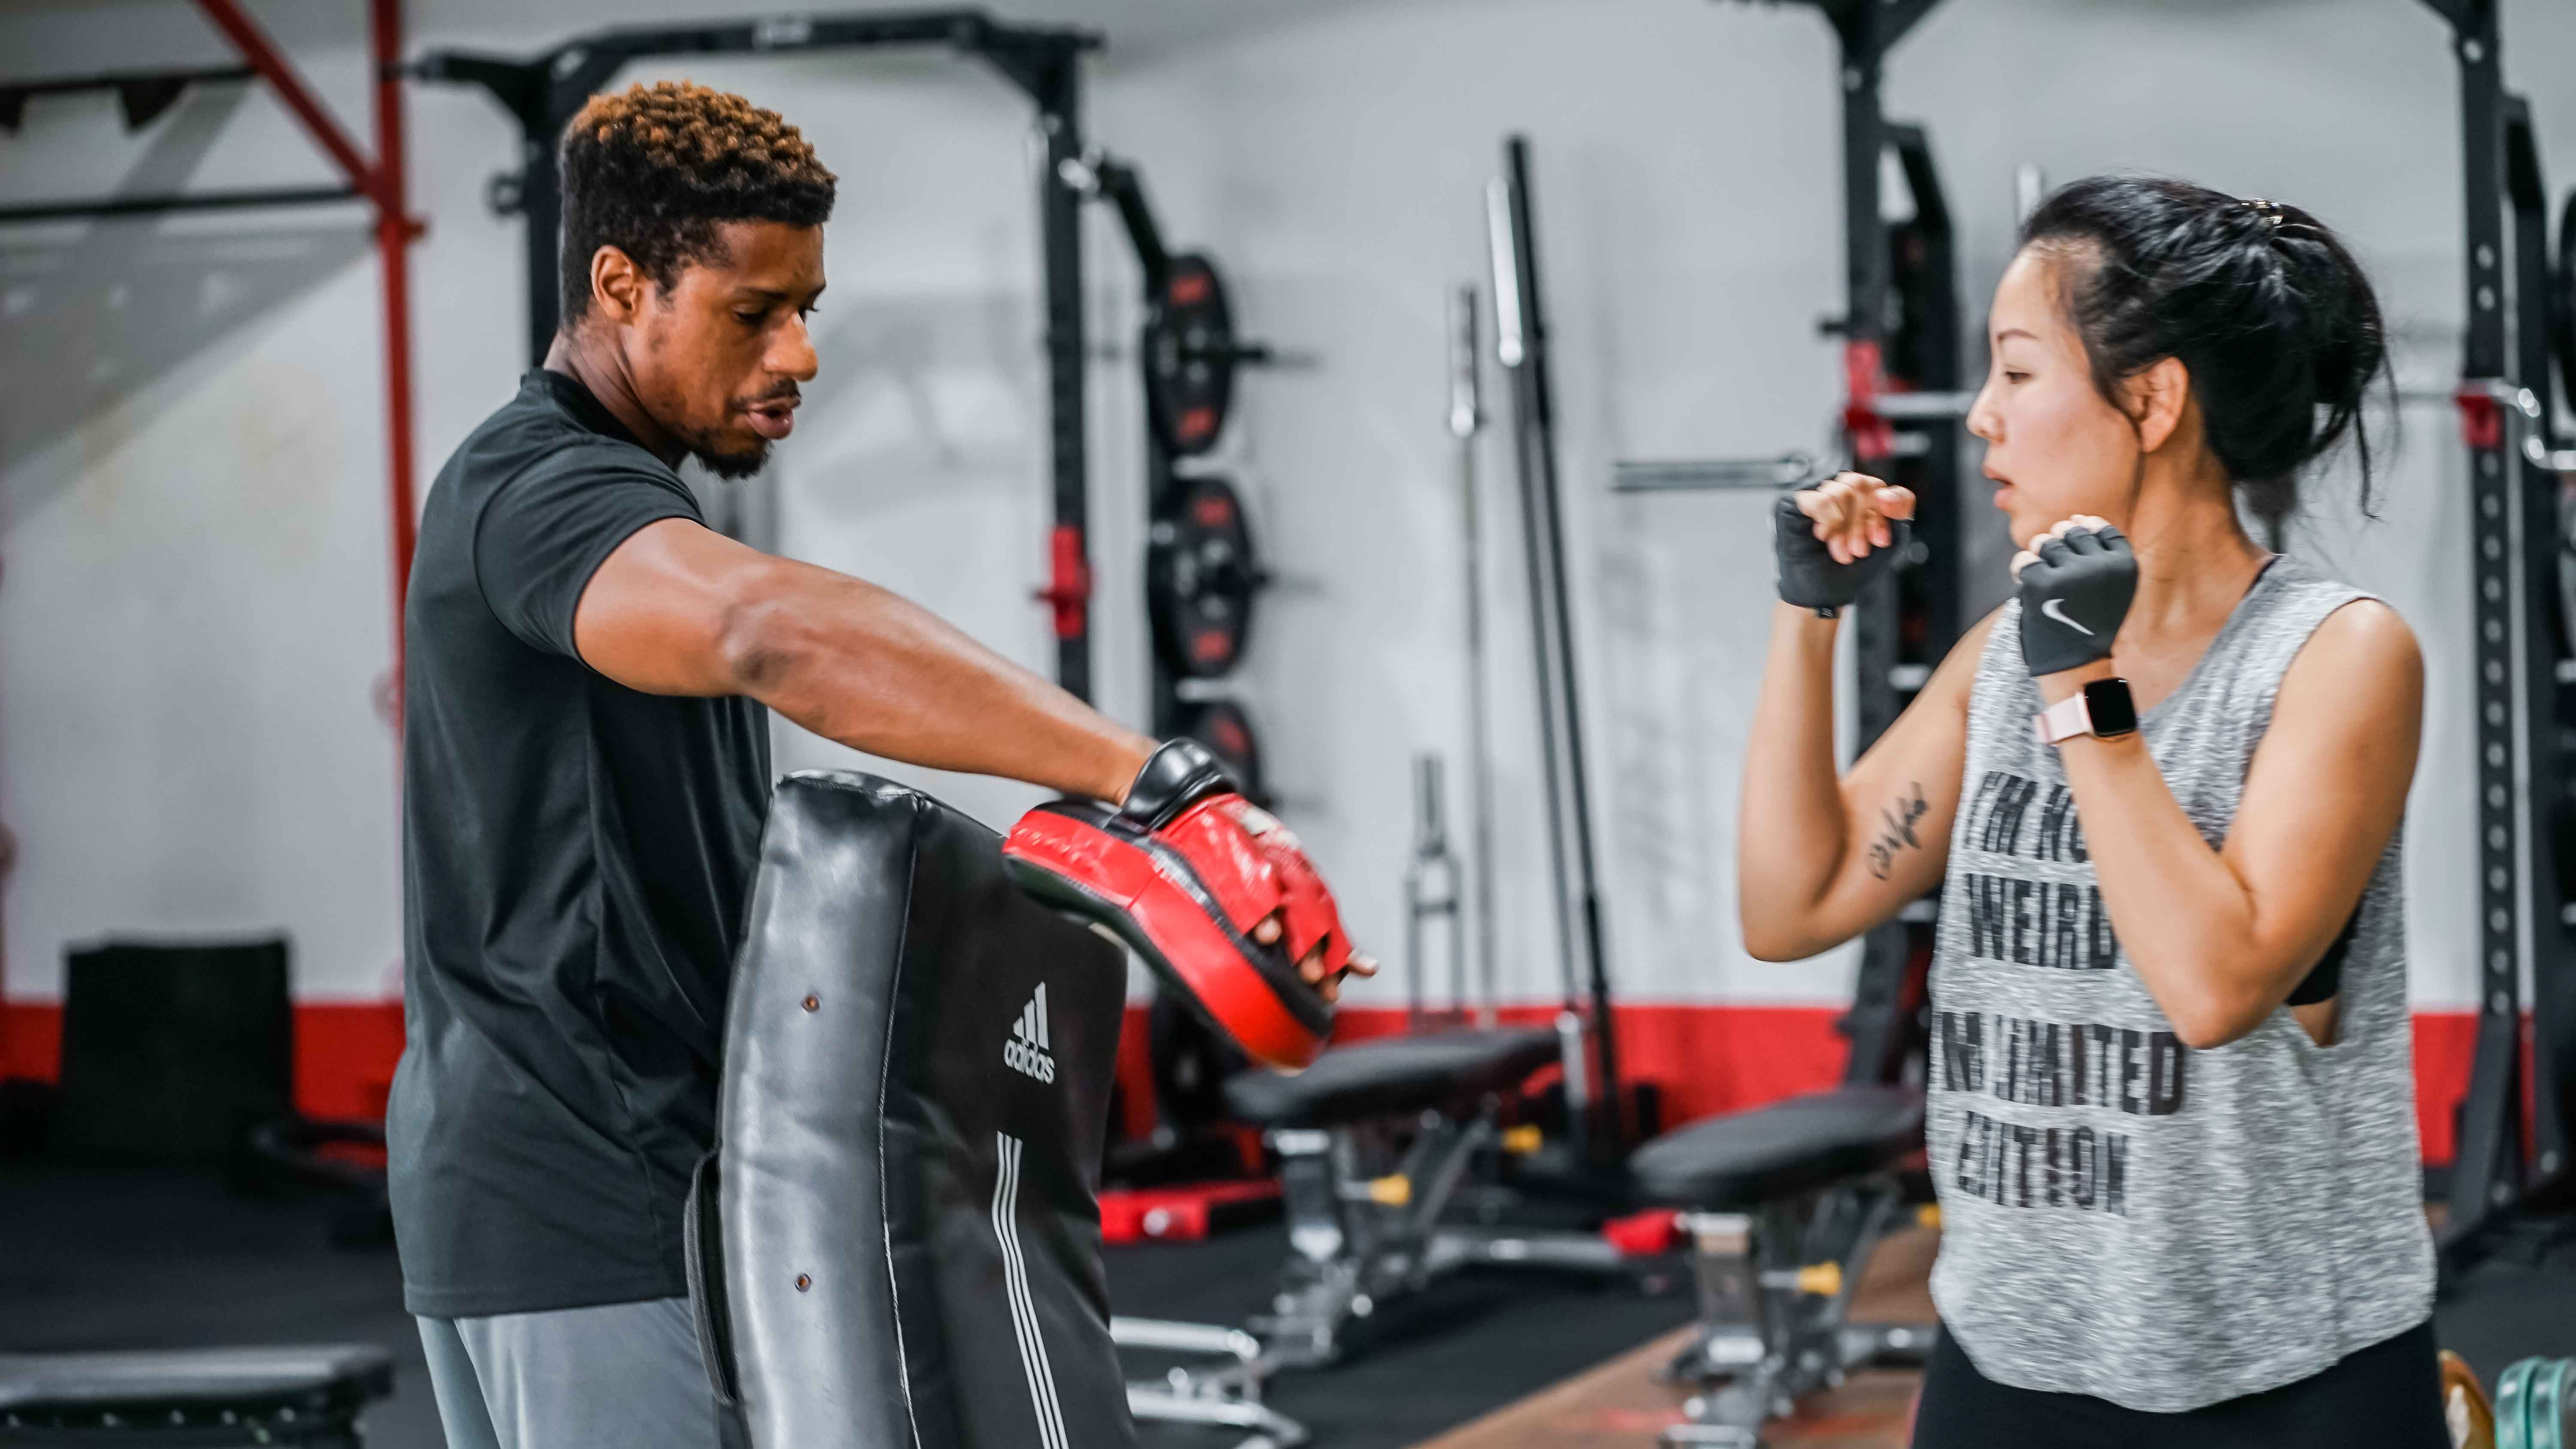 Personal Training at UFIT One North Gym